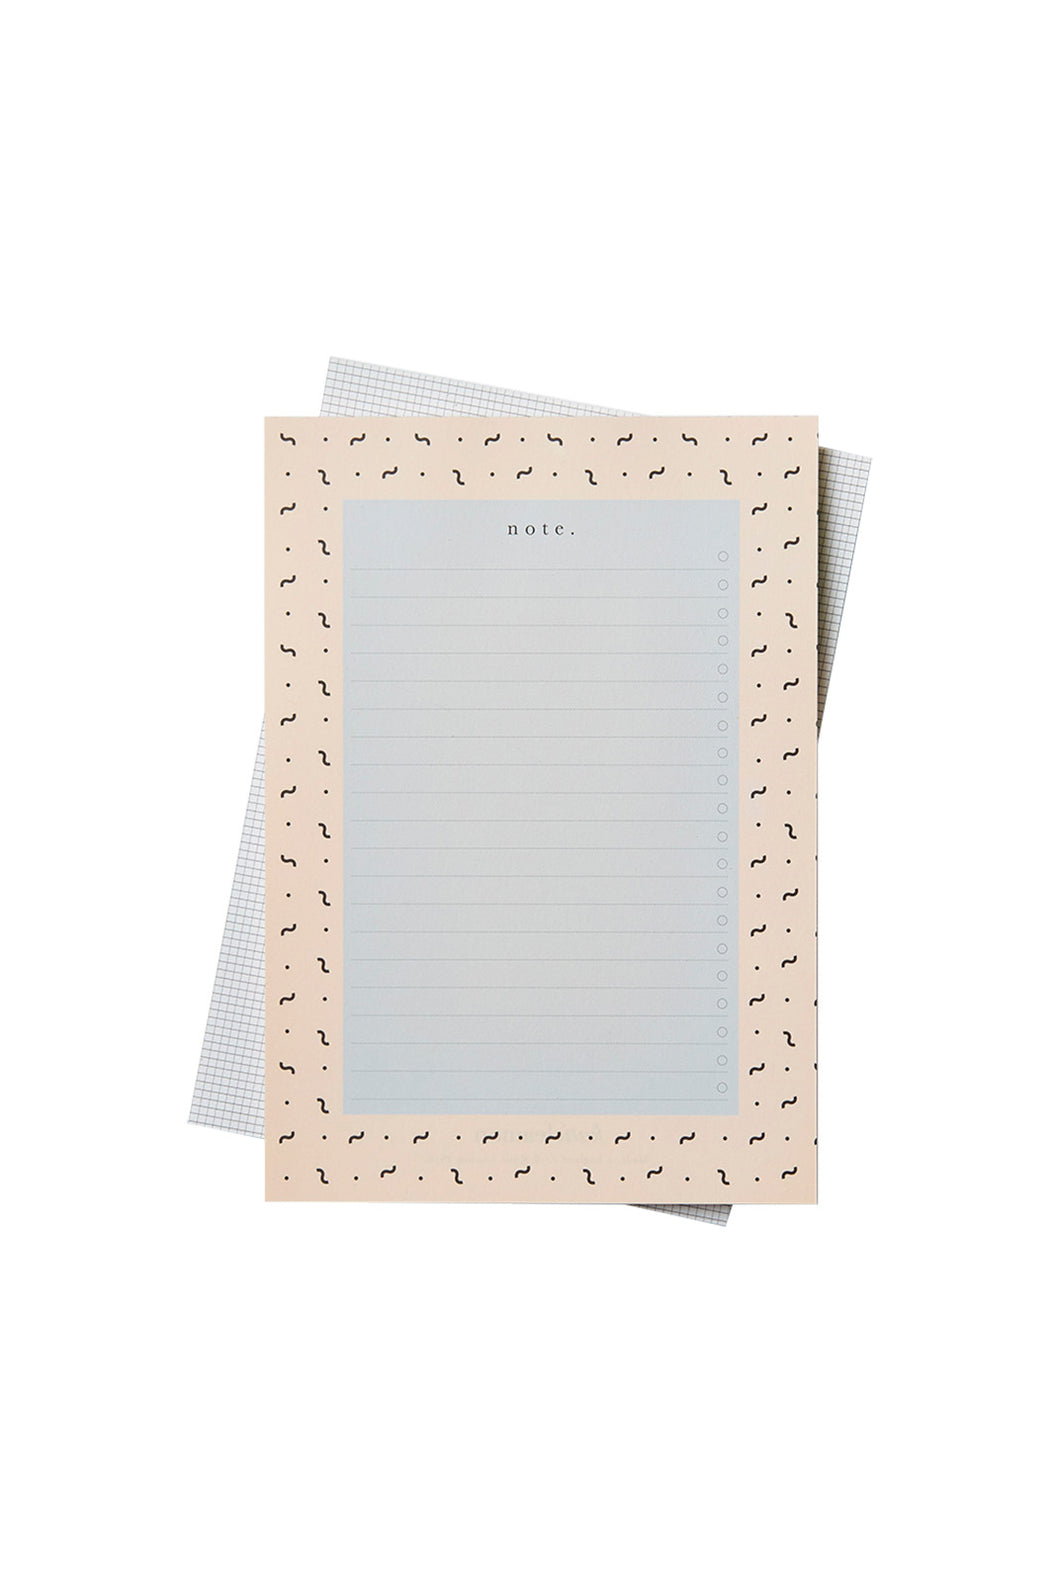 Katie Leamon - Notepad - Ruled - B5 - Pink & Grey